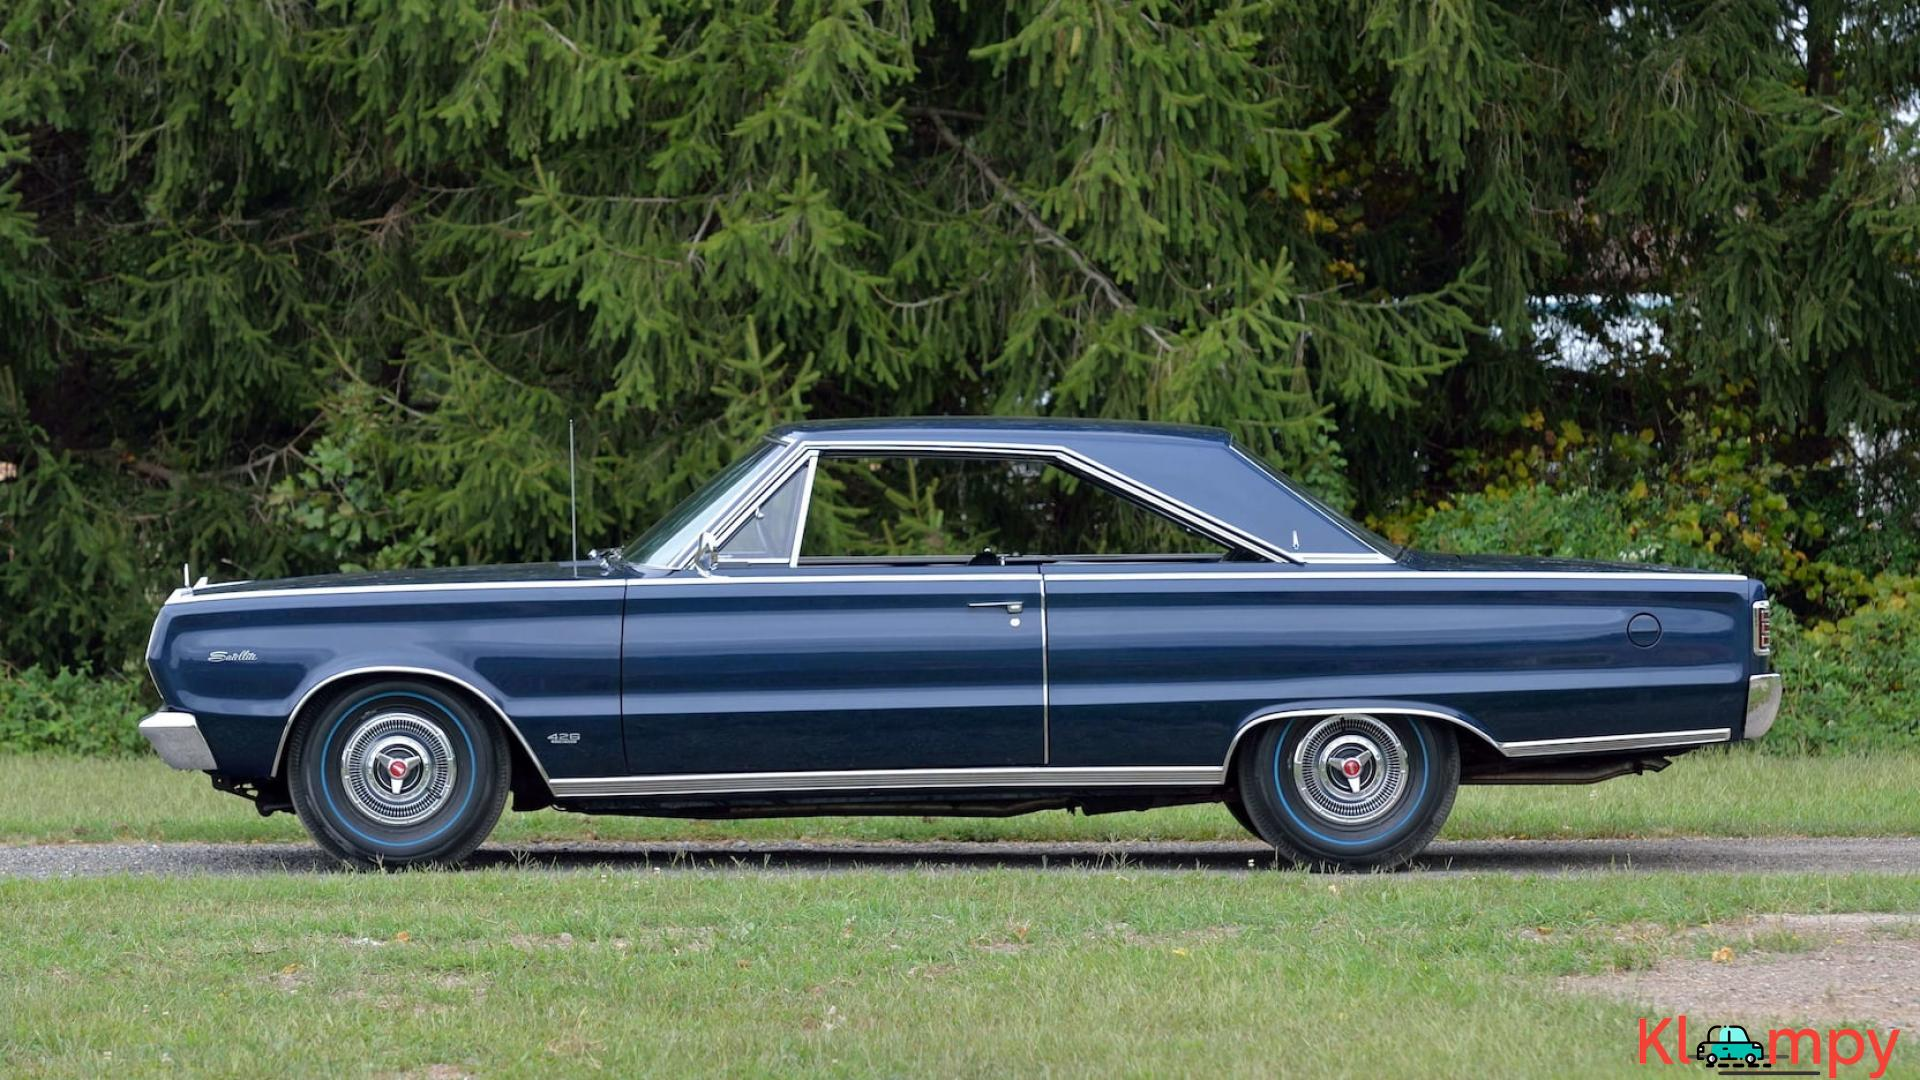 1966 Plymouth Satellite Original 426 CI - 9/18